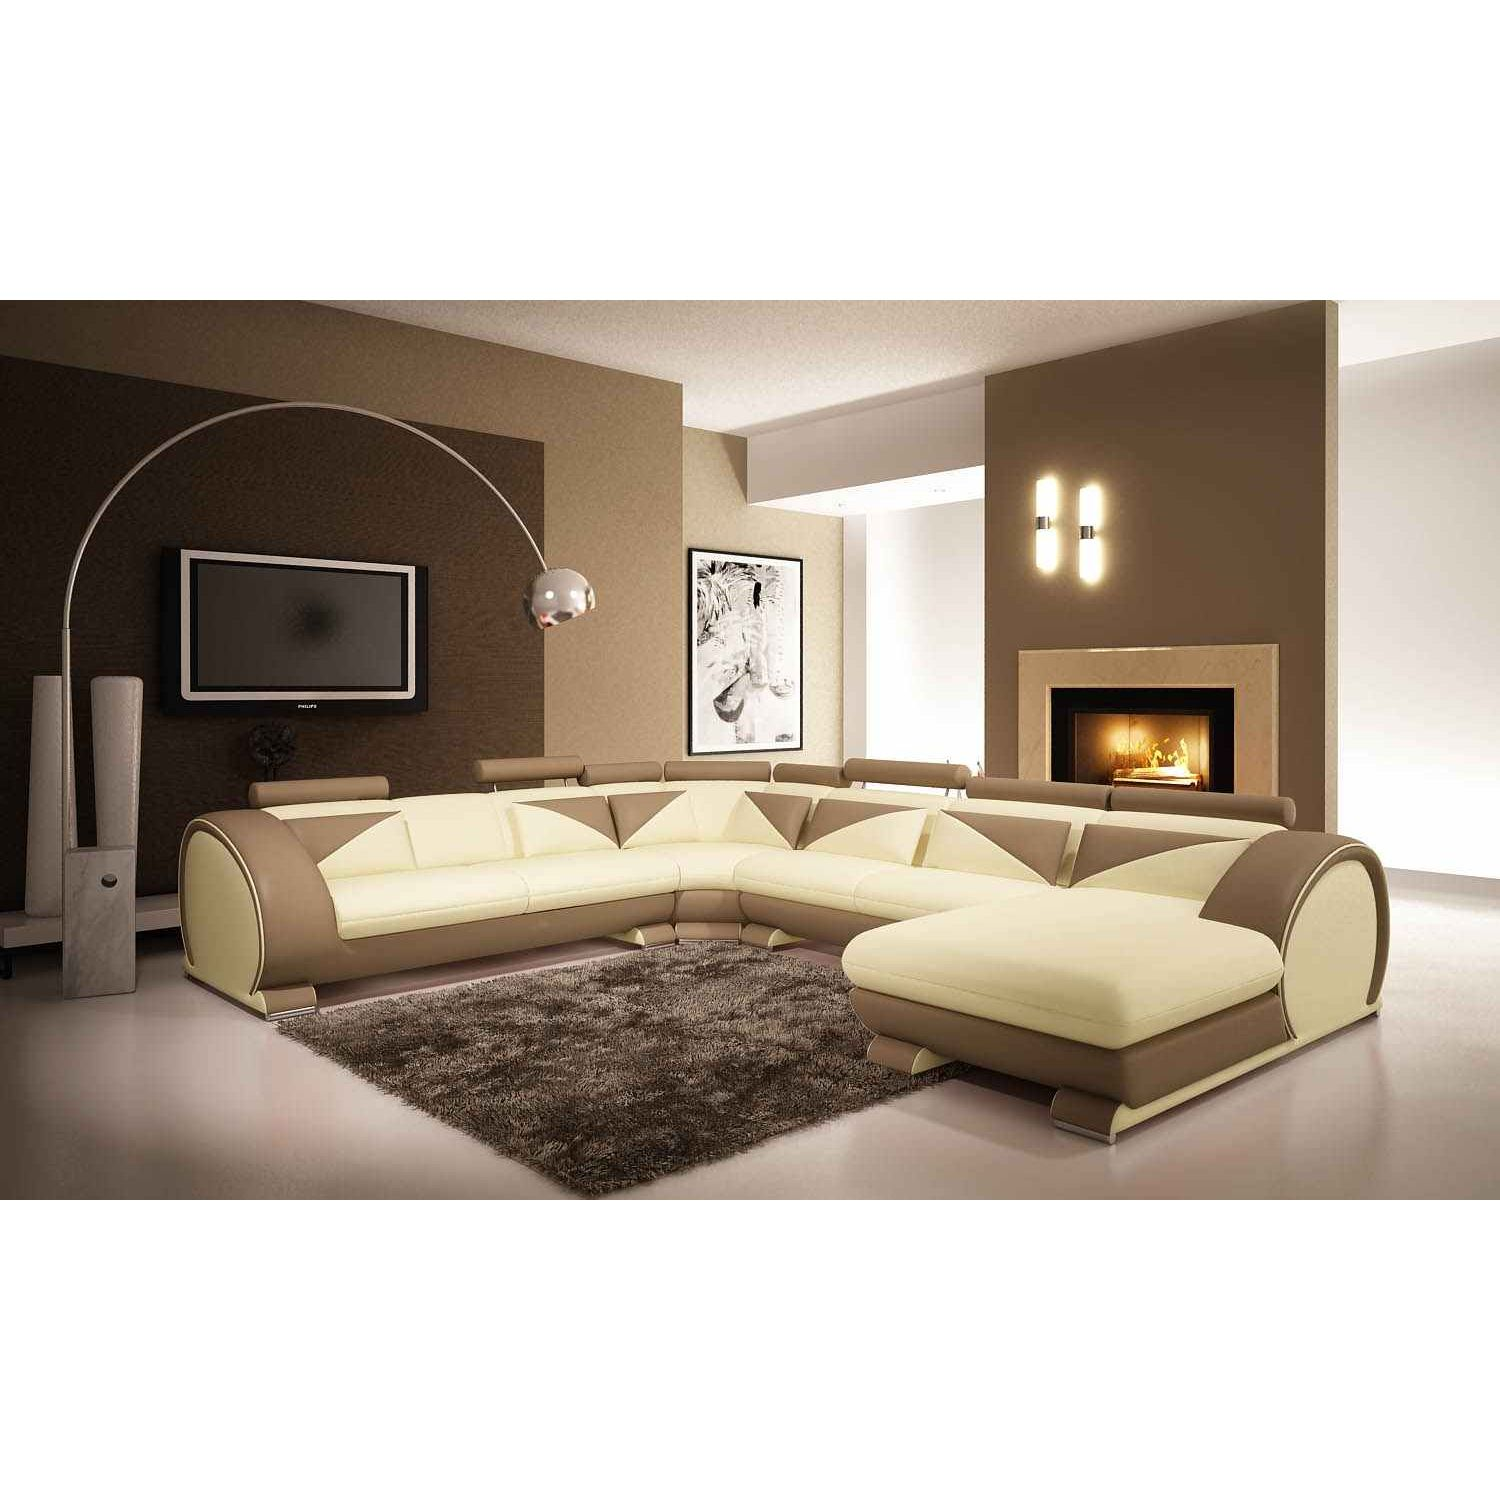 deco in paris canape d angle panoramique cuir beige et marron miami angl pano beig marron miami. Black Bedroom Furniture Sets. Home Design Ideas